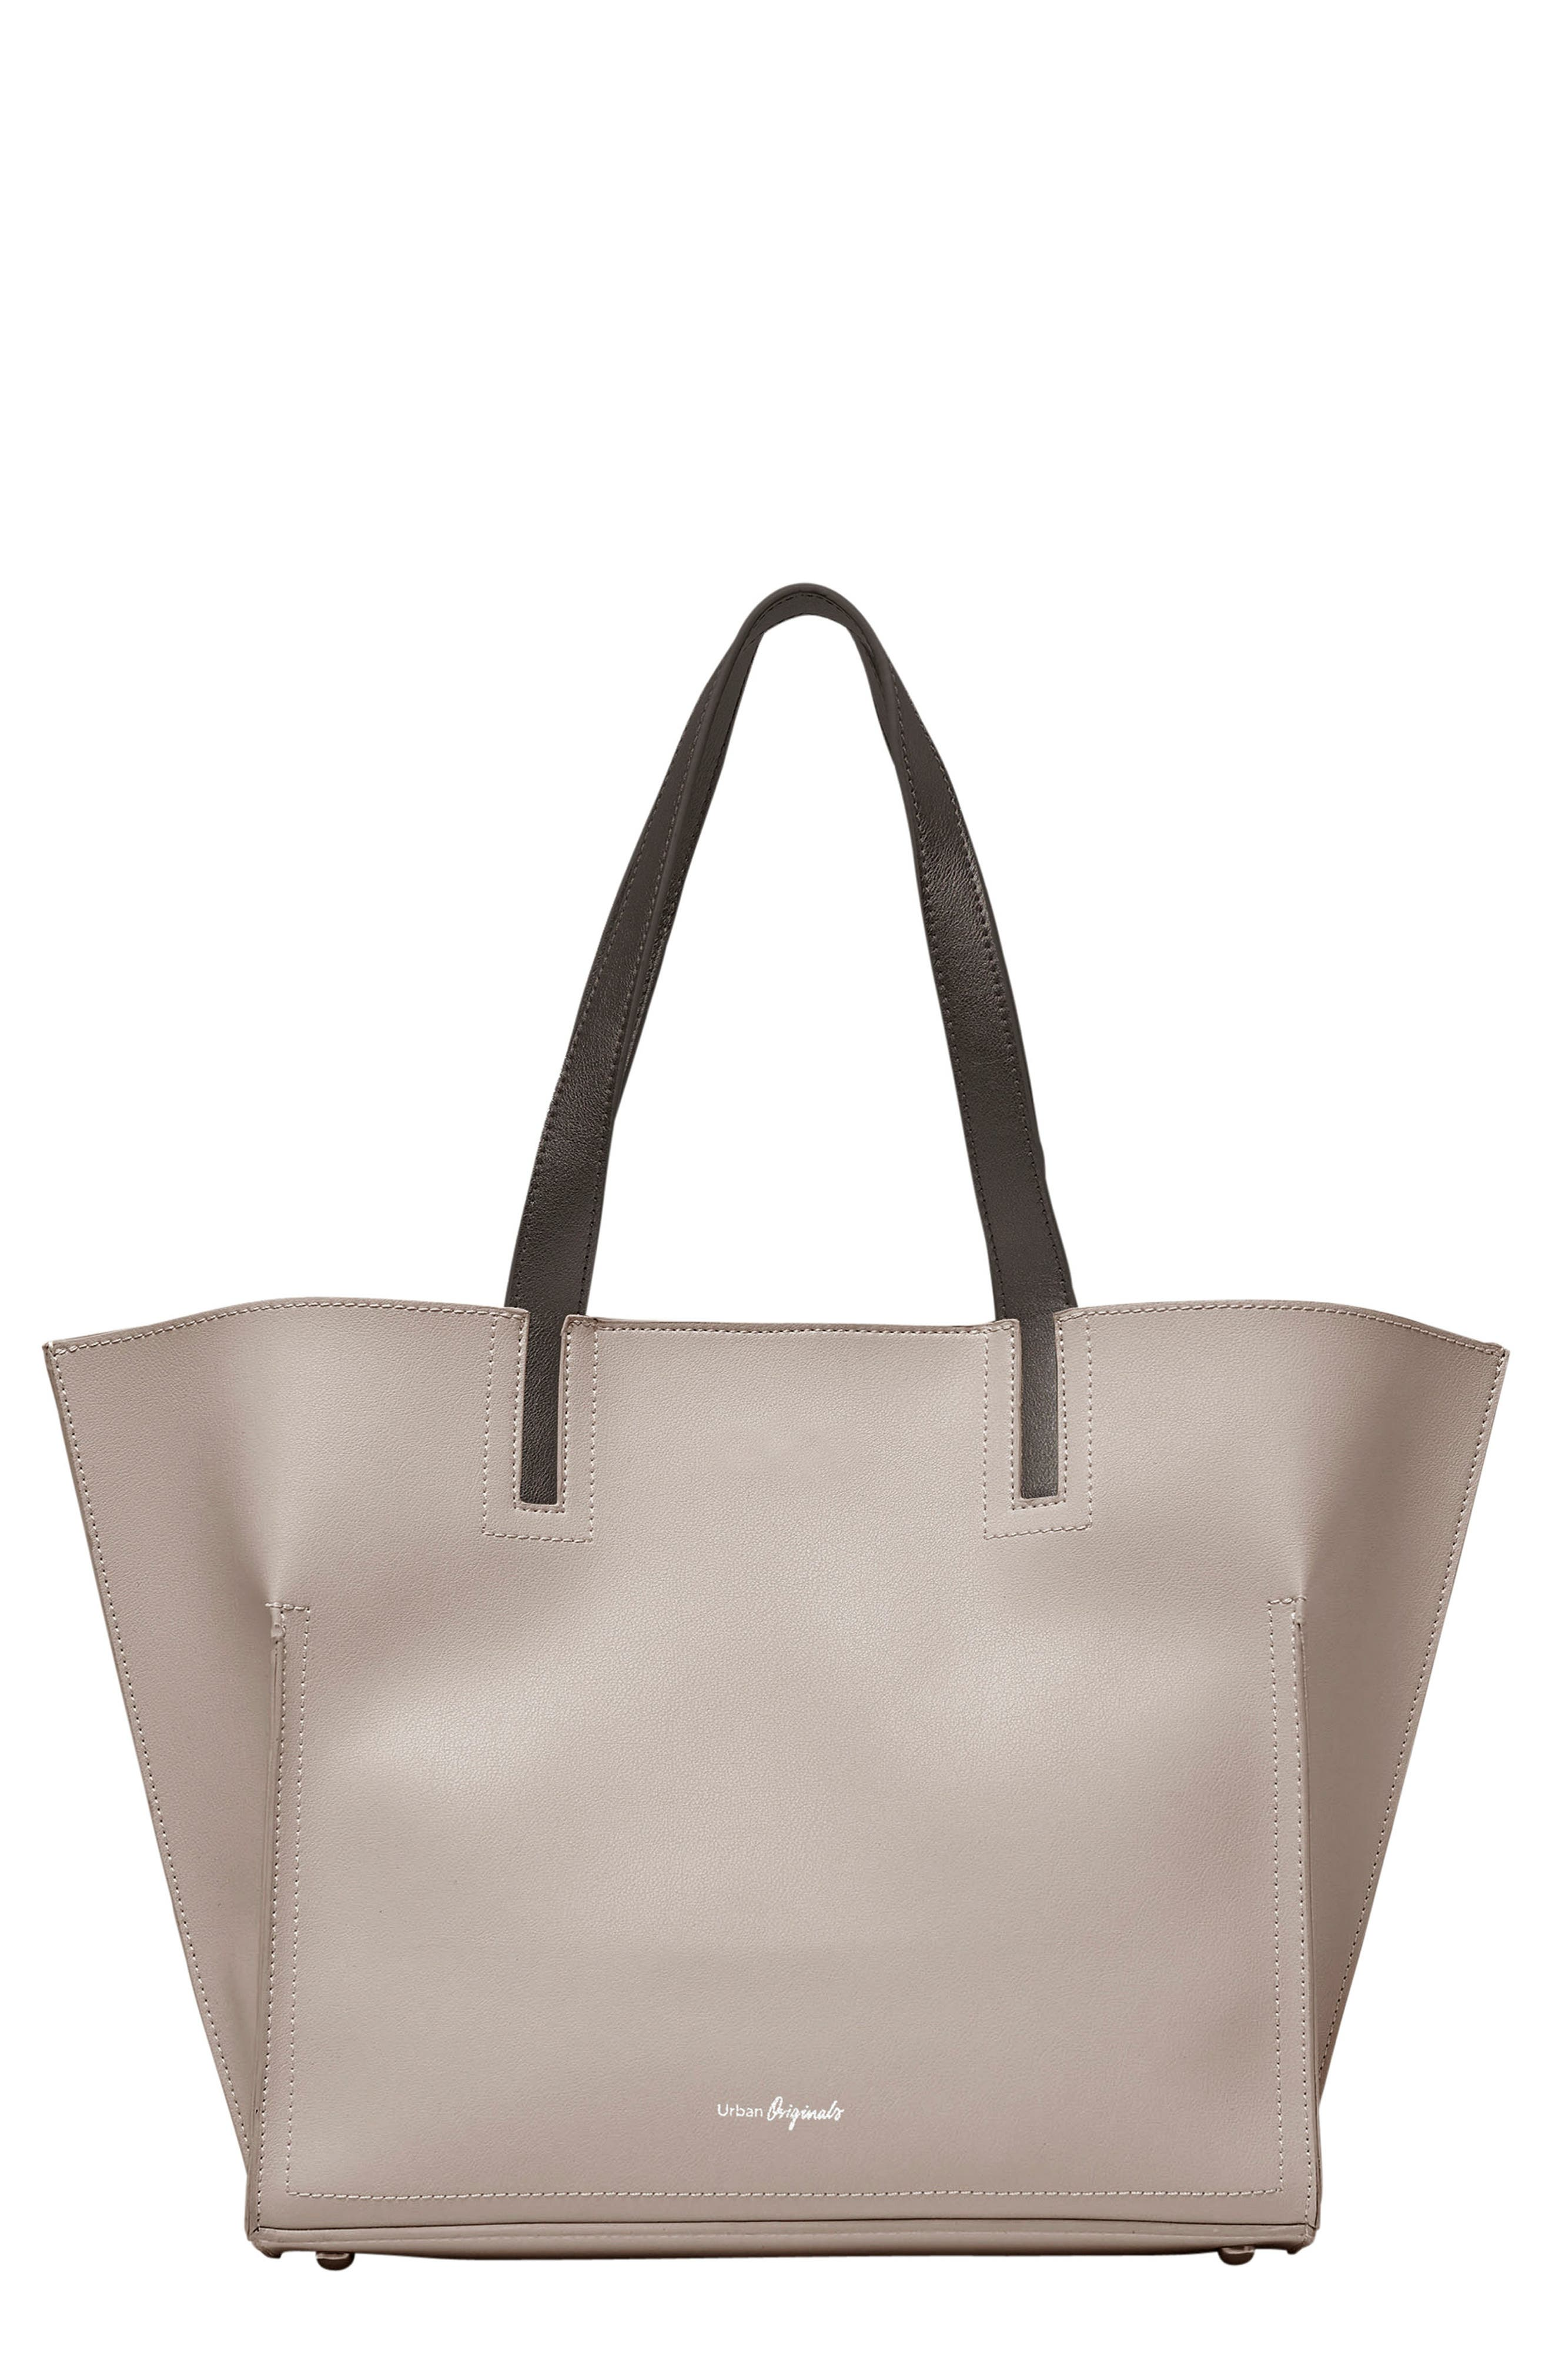 Obsession Vegan Leather Tote,                             Main thumbnail 4, color,